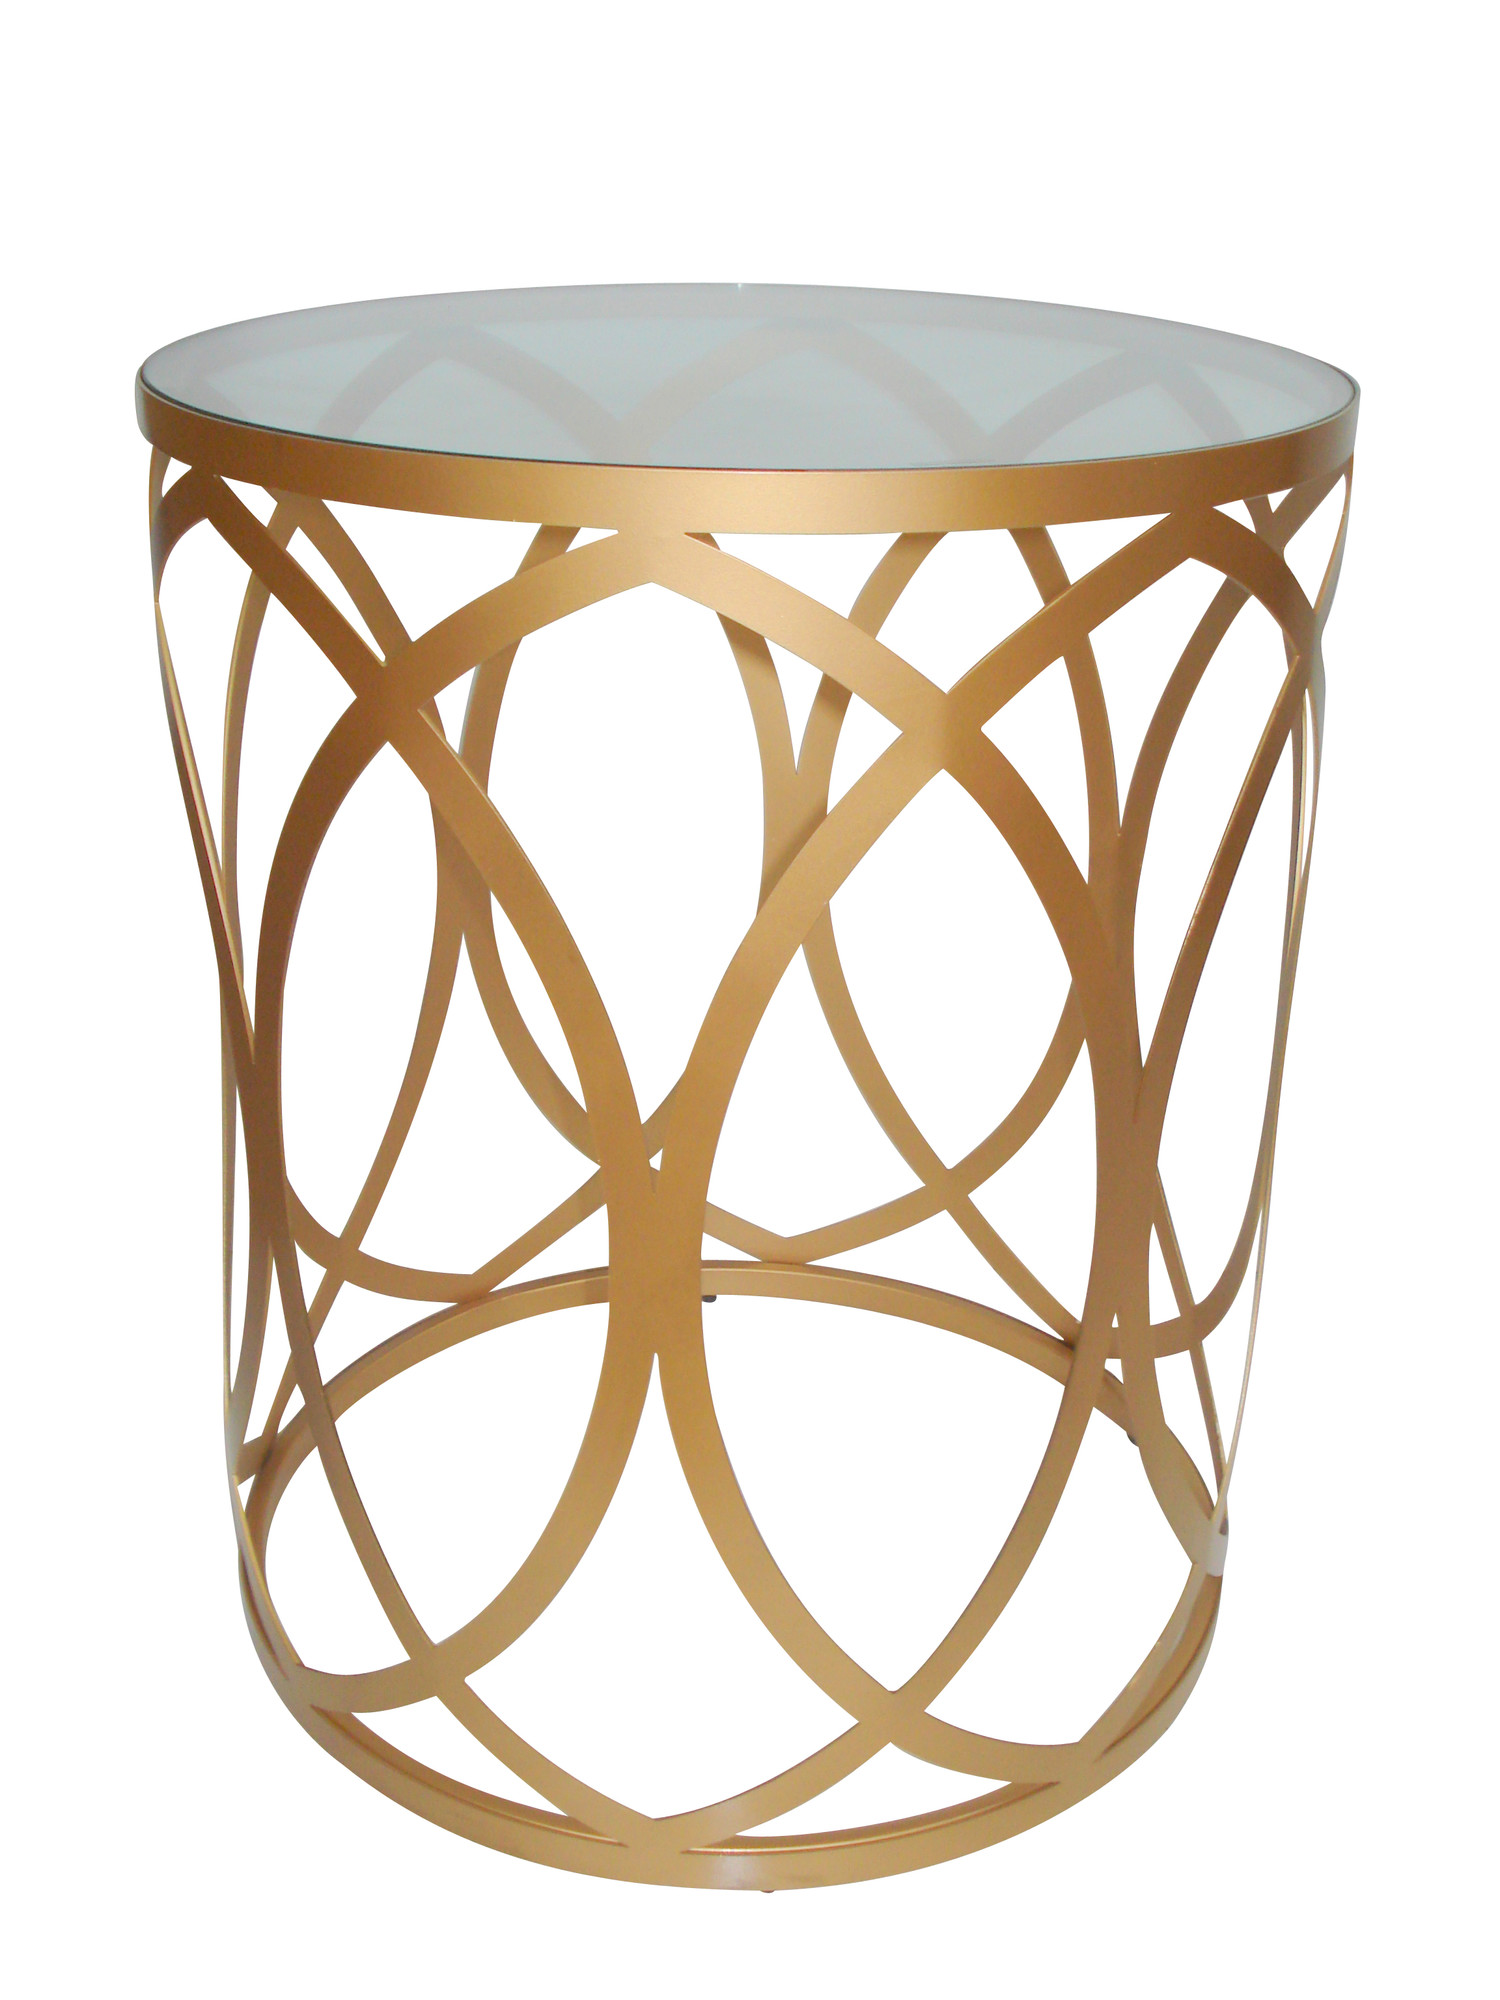 New drum side table ebay for Drum side table